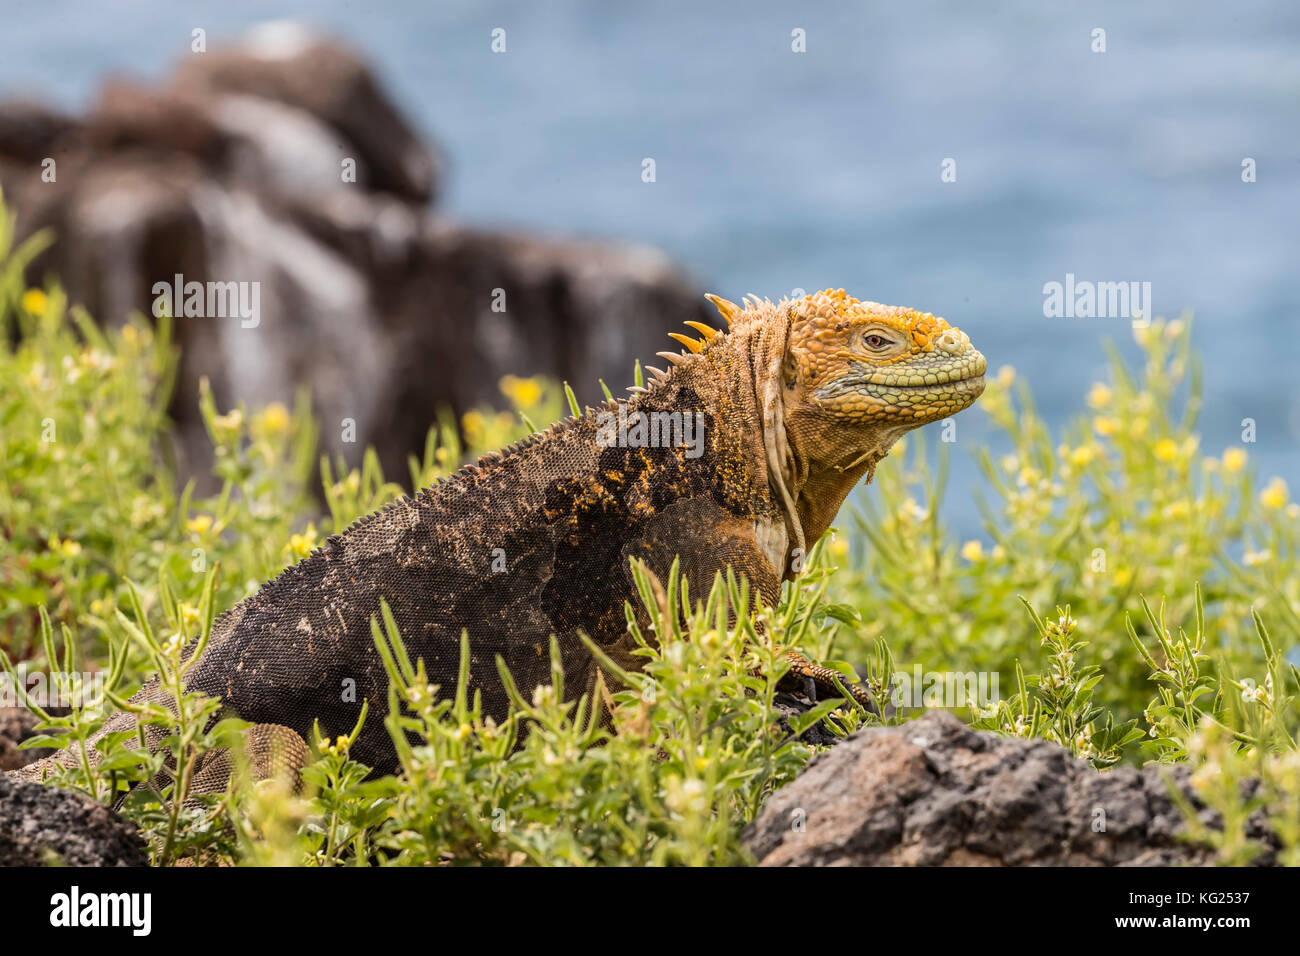 An adult Galapagos land iguana (Conolophus subcristatus), basking on North Seymour Island, Galapagos, Ecuador, South - Stock Image